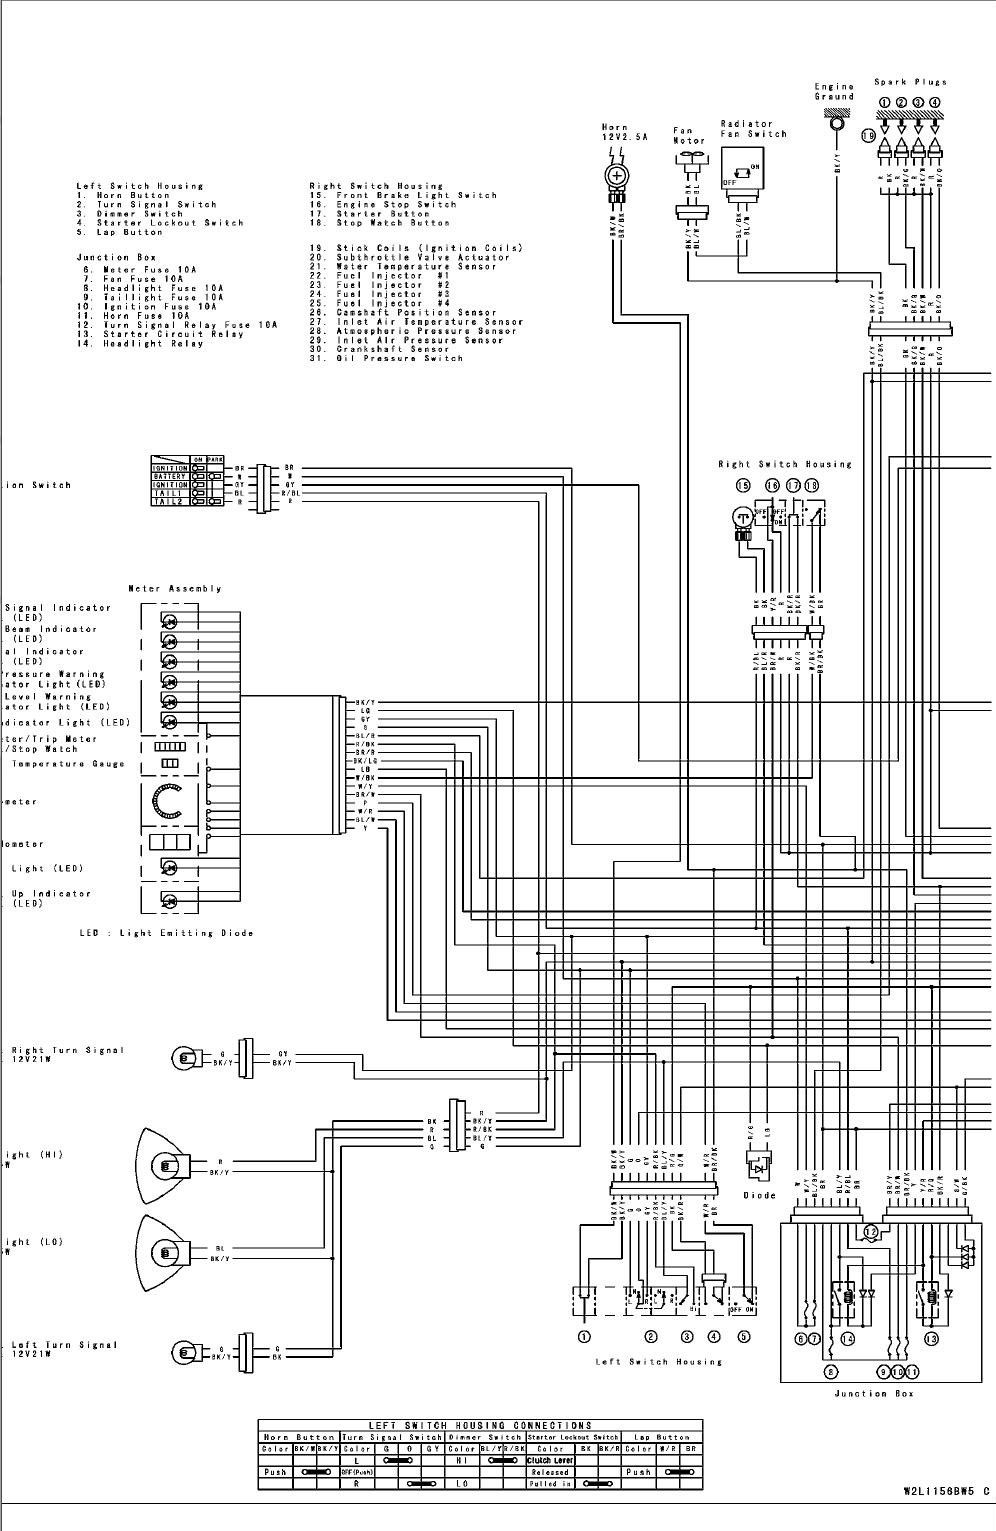 medium resolution of kawasaki 600 wiring diagram wiring diagram sample kawasaki zzr 600 wiring diagram kawasaki 600 wiring diagram